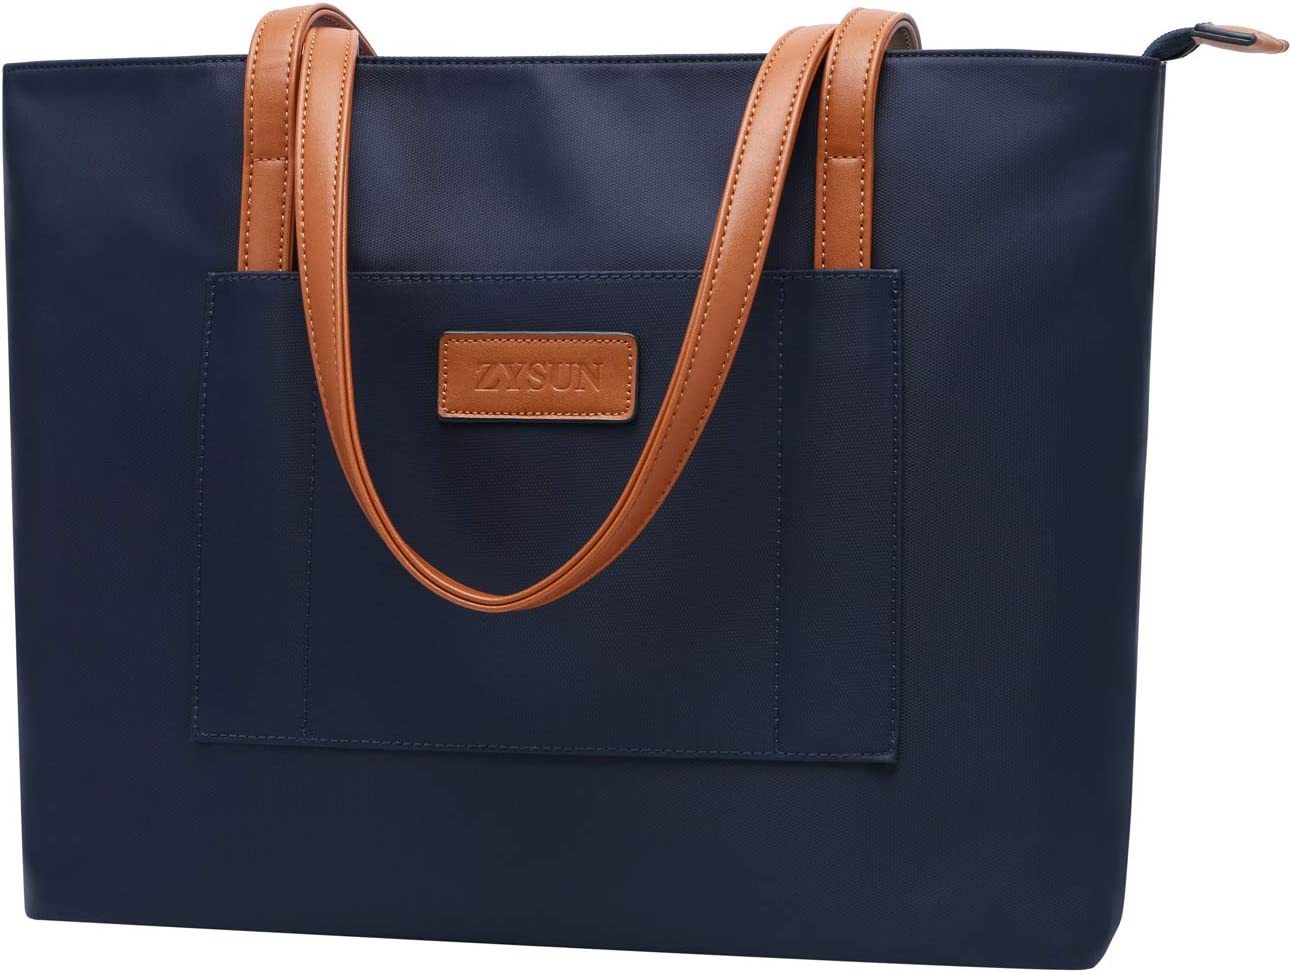 Laptop-Bag,13-15.6 Inch LaptopTote Bag for Women Nylon Work Bags Water-repellent Briefcase Durable Teacher Bag Lightweight School Bags for Business Travel Office Weekend,Navy